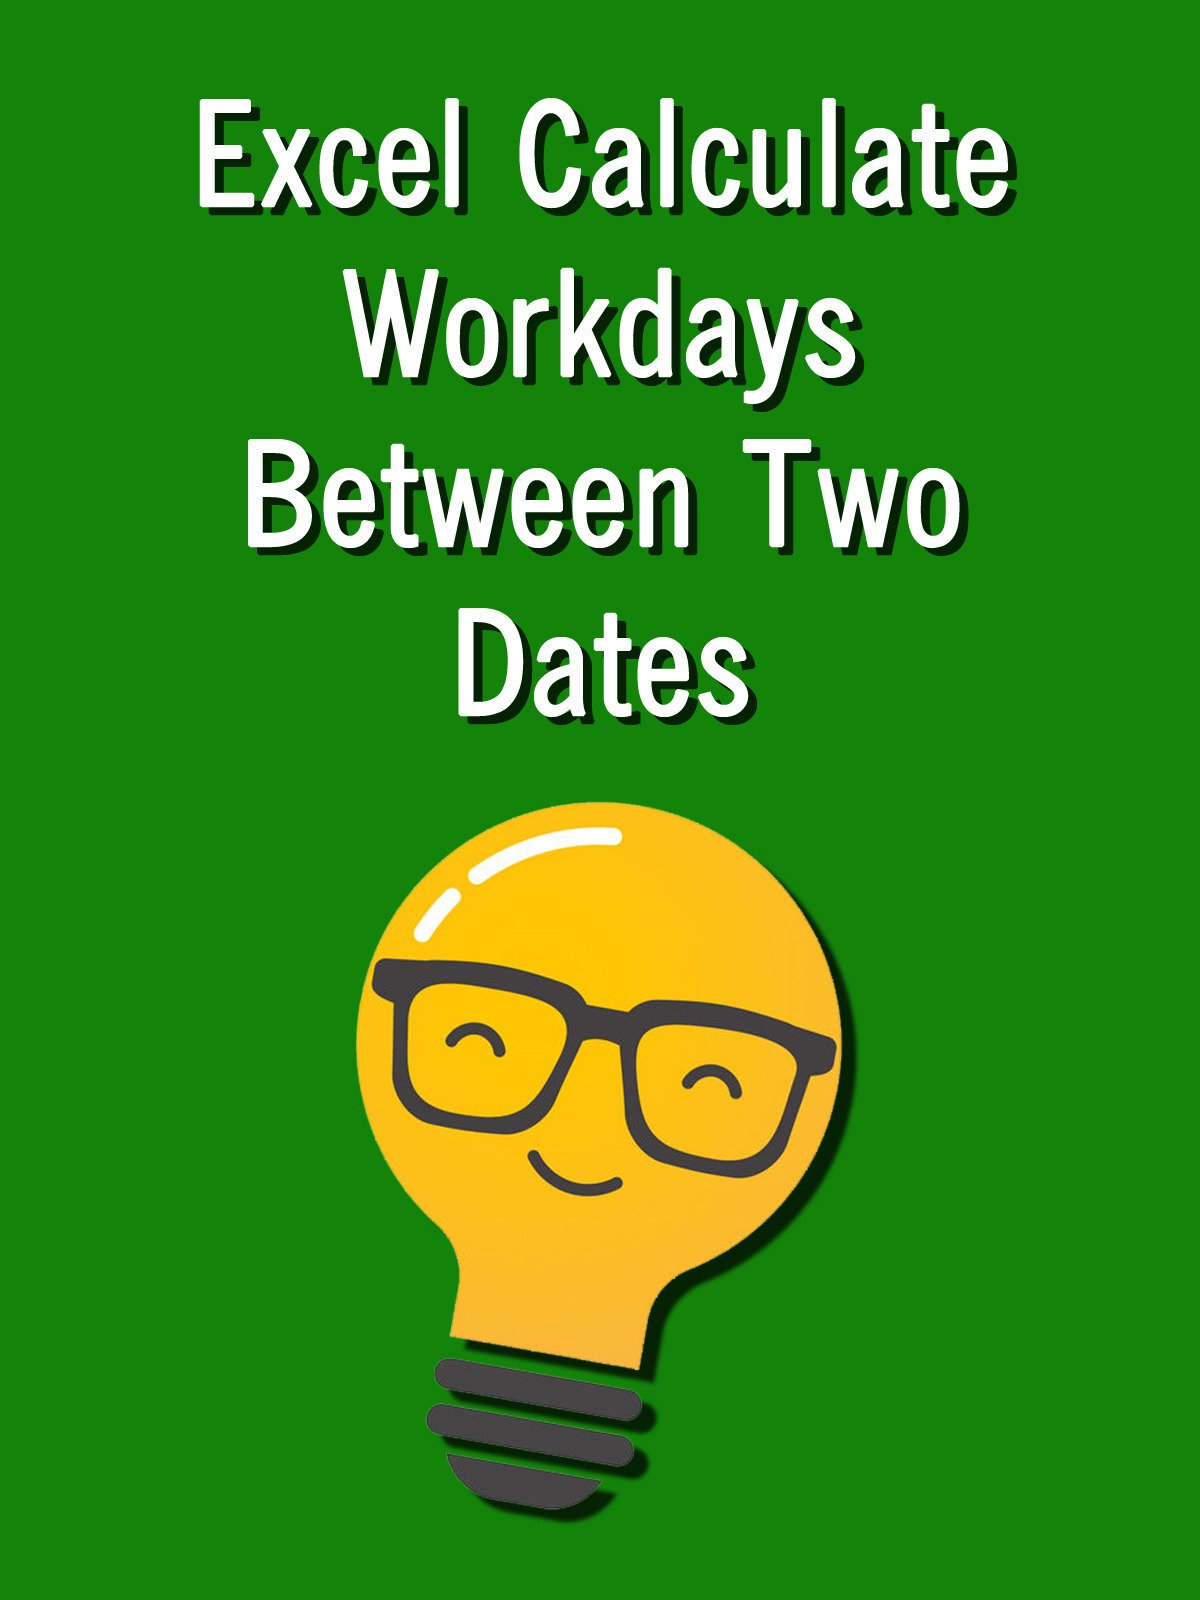 Excel Calculate Workdays Between Two Dates